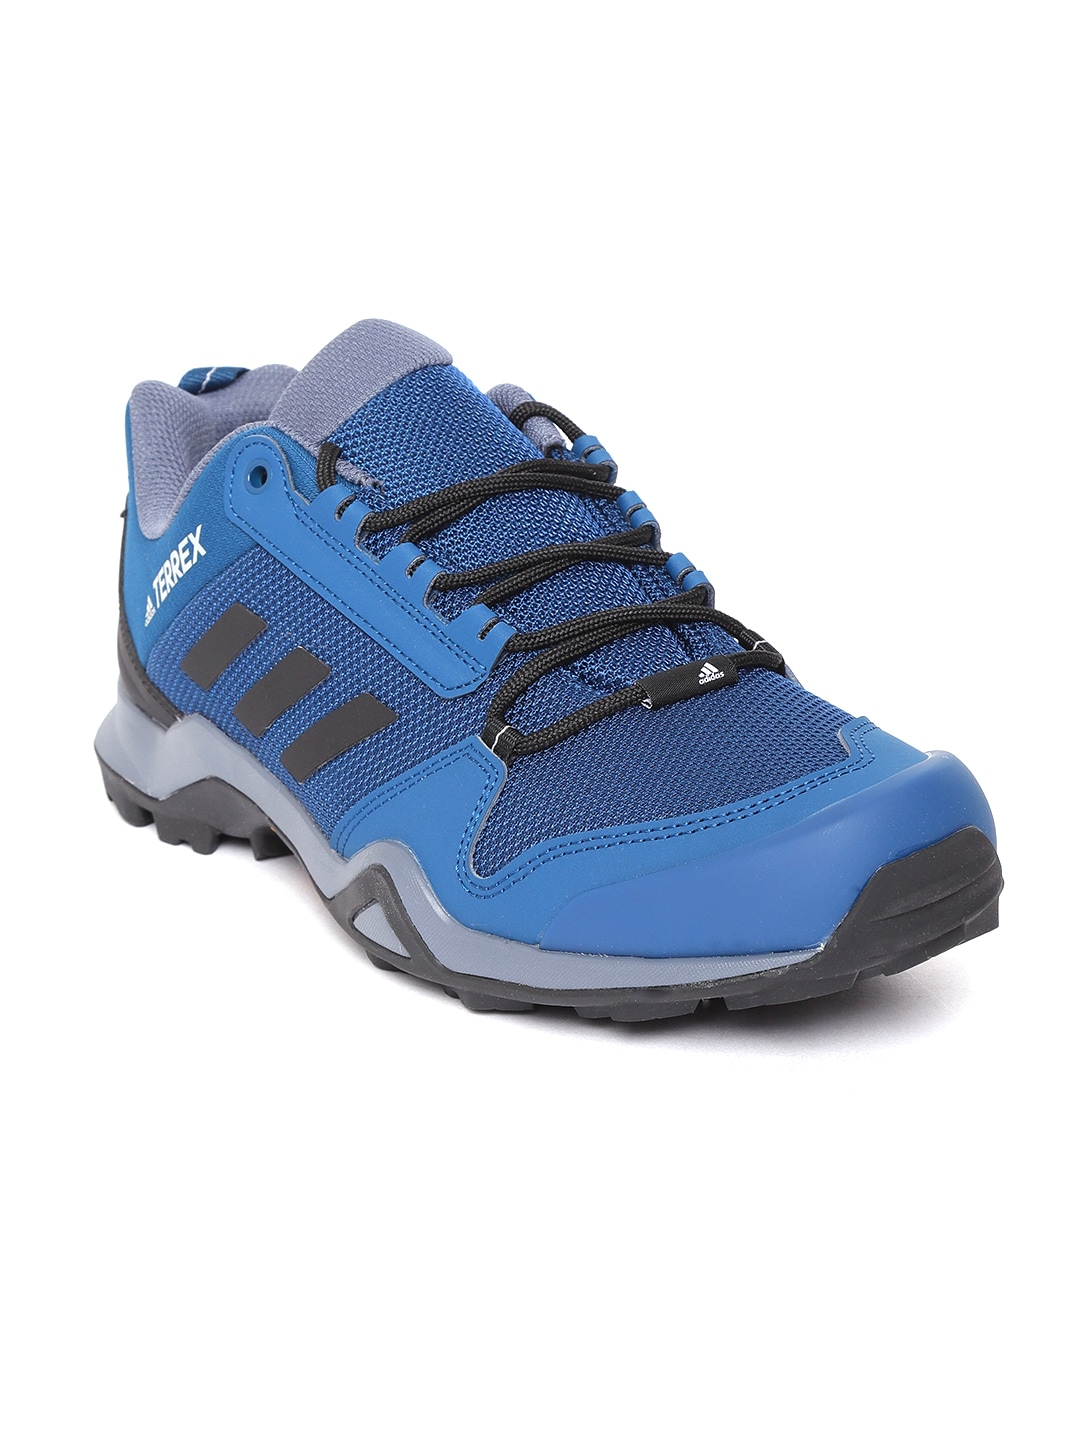 81adf6395 adidas - Exclusive adidas Online Store in India at Myntra